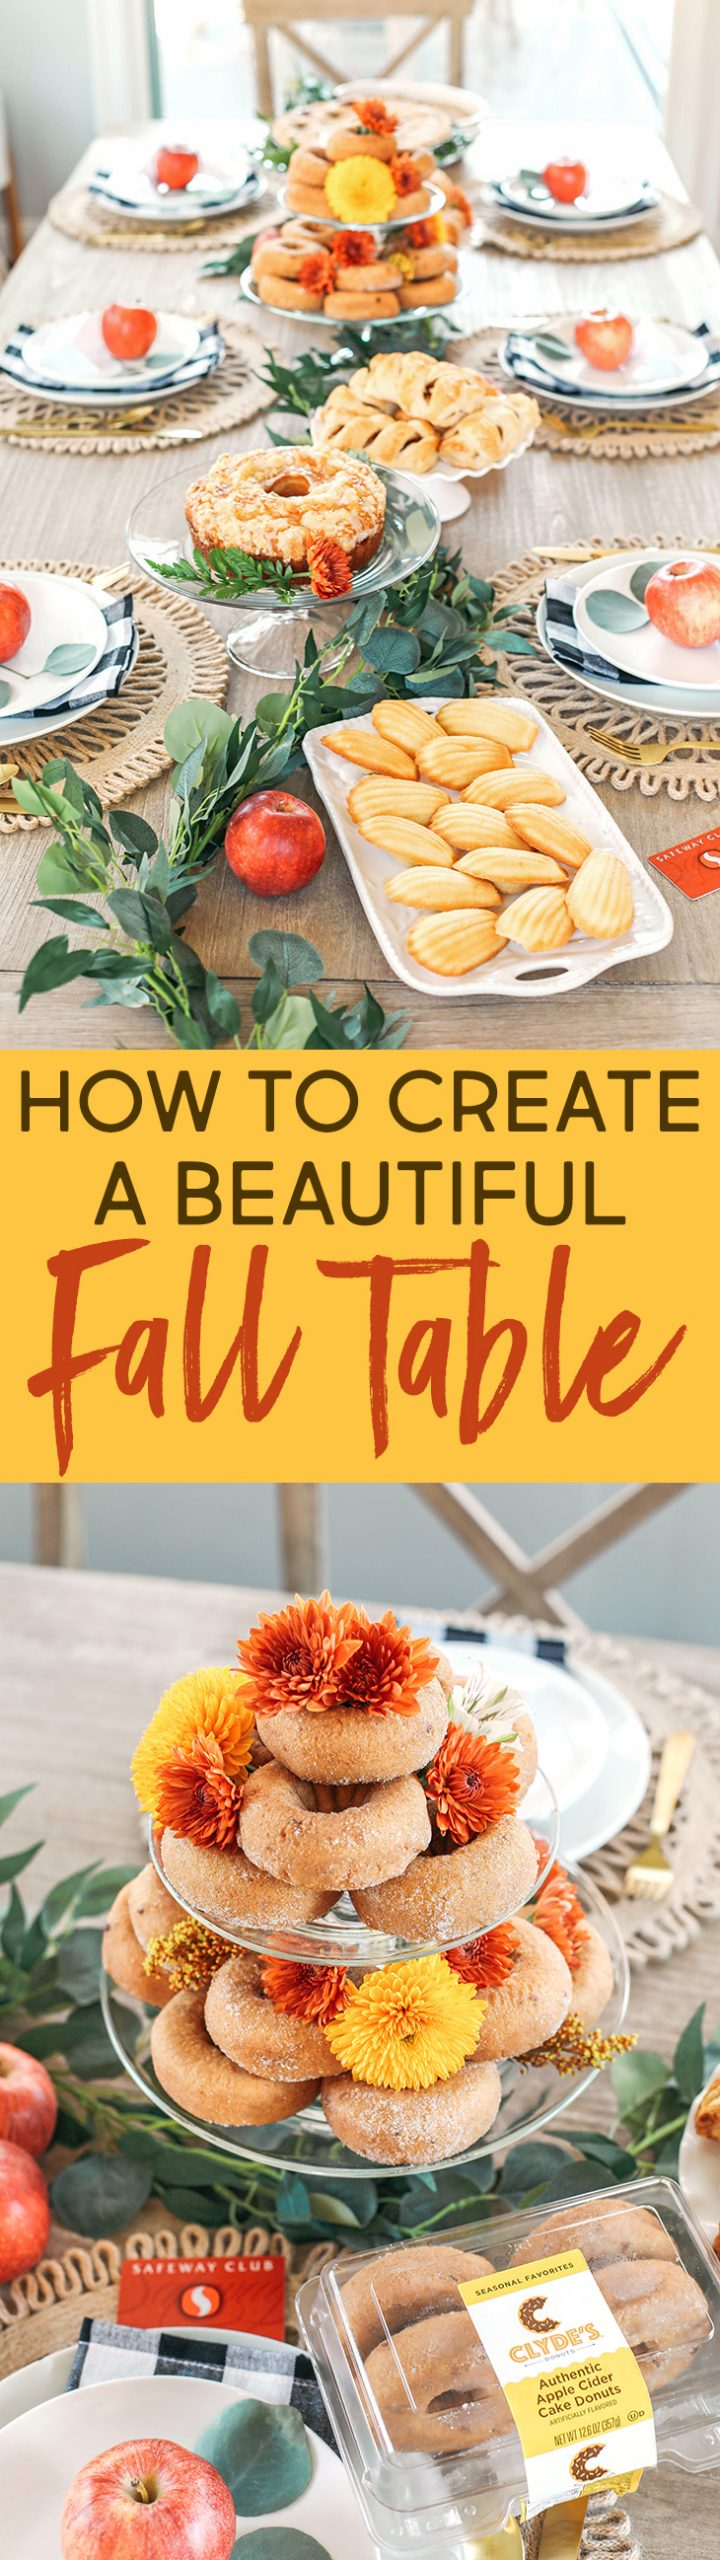 Whether hosting family this holiday or throwing together a quick brunch, here are some fun tips for creating a beautiful fall-inspired table!